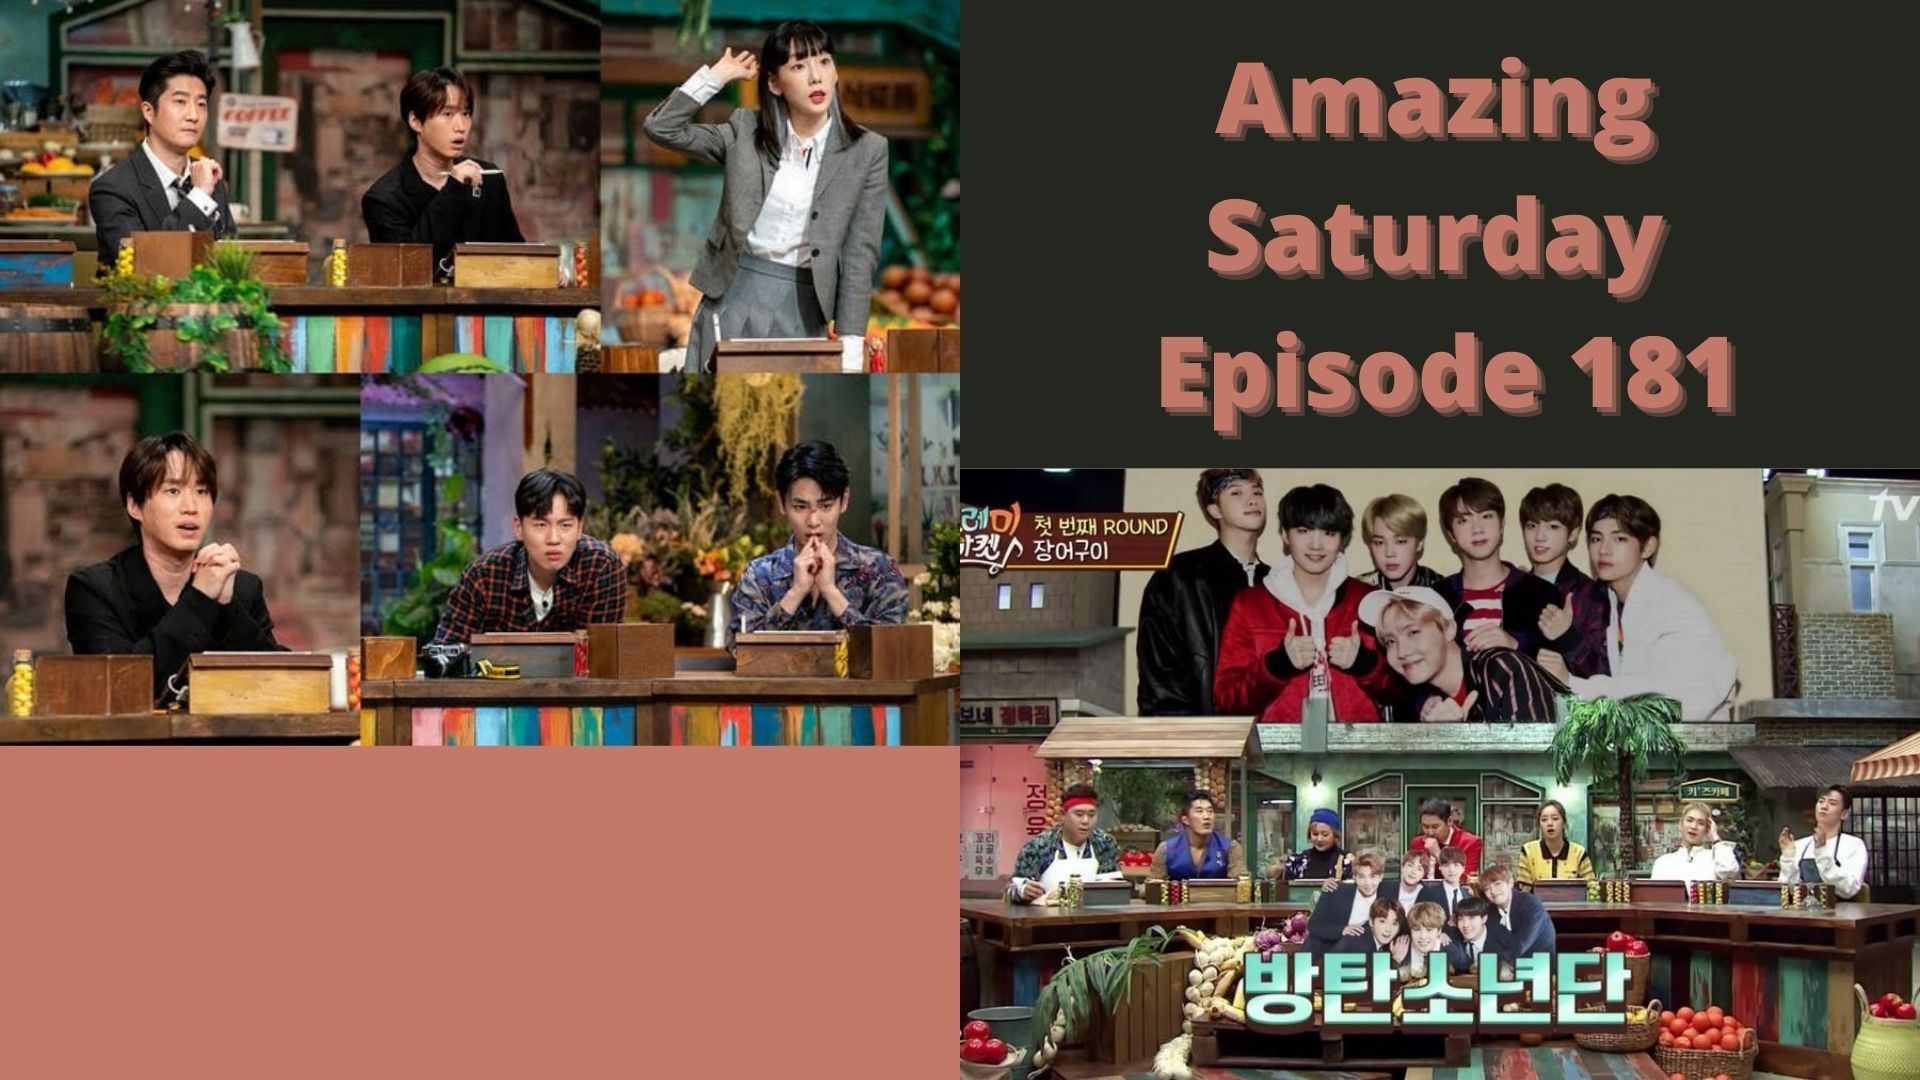 Amazing Saturday Episode 181: Release Date & Where to Watch